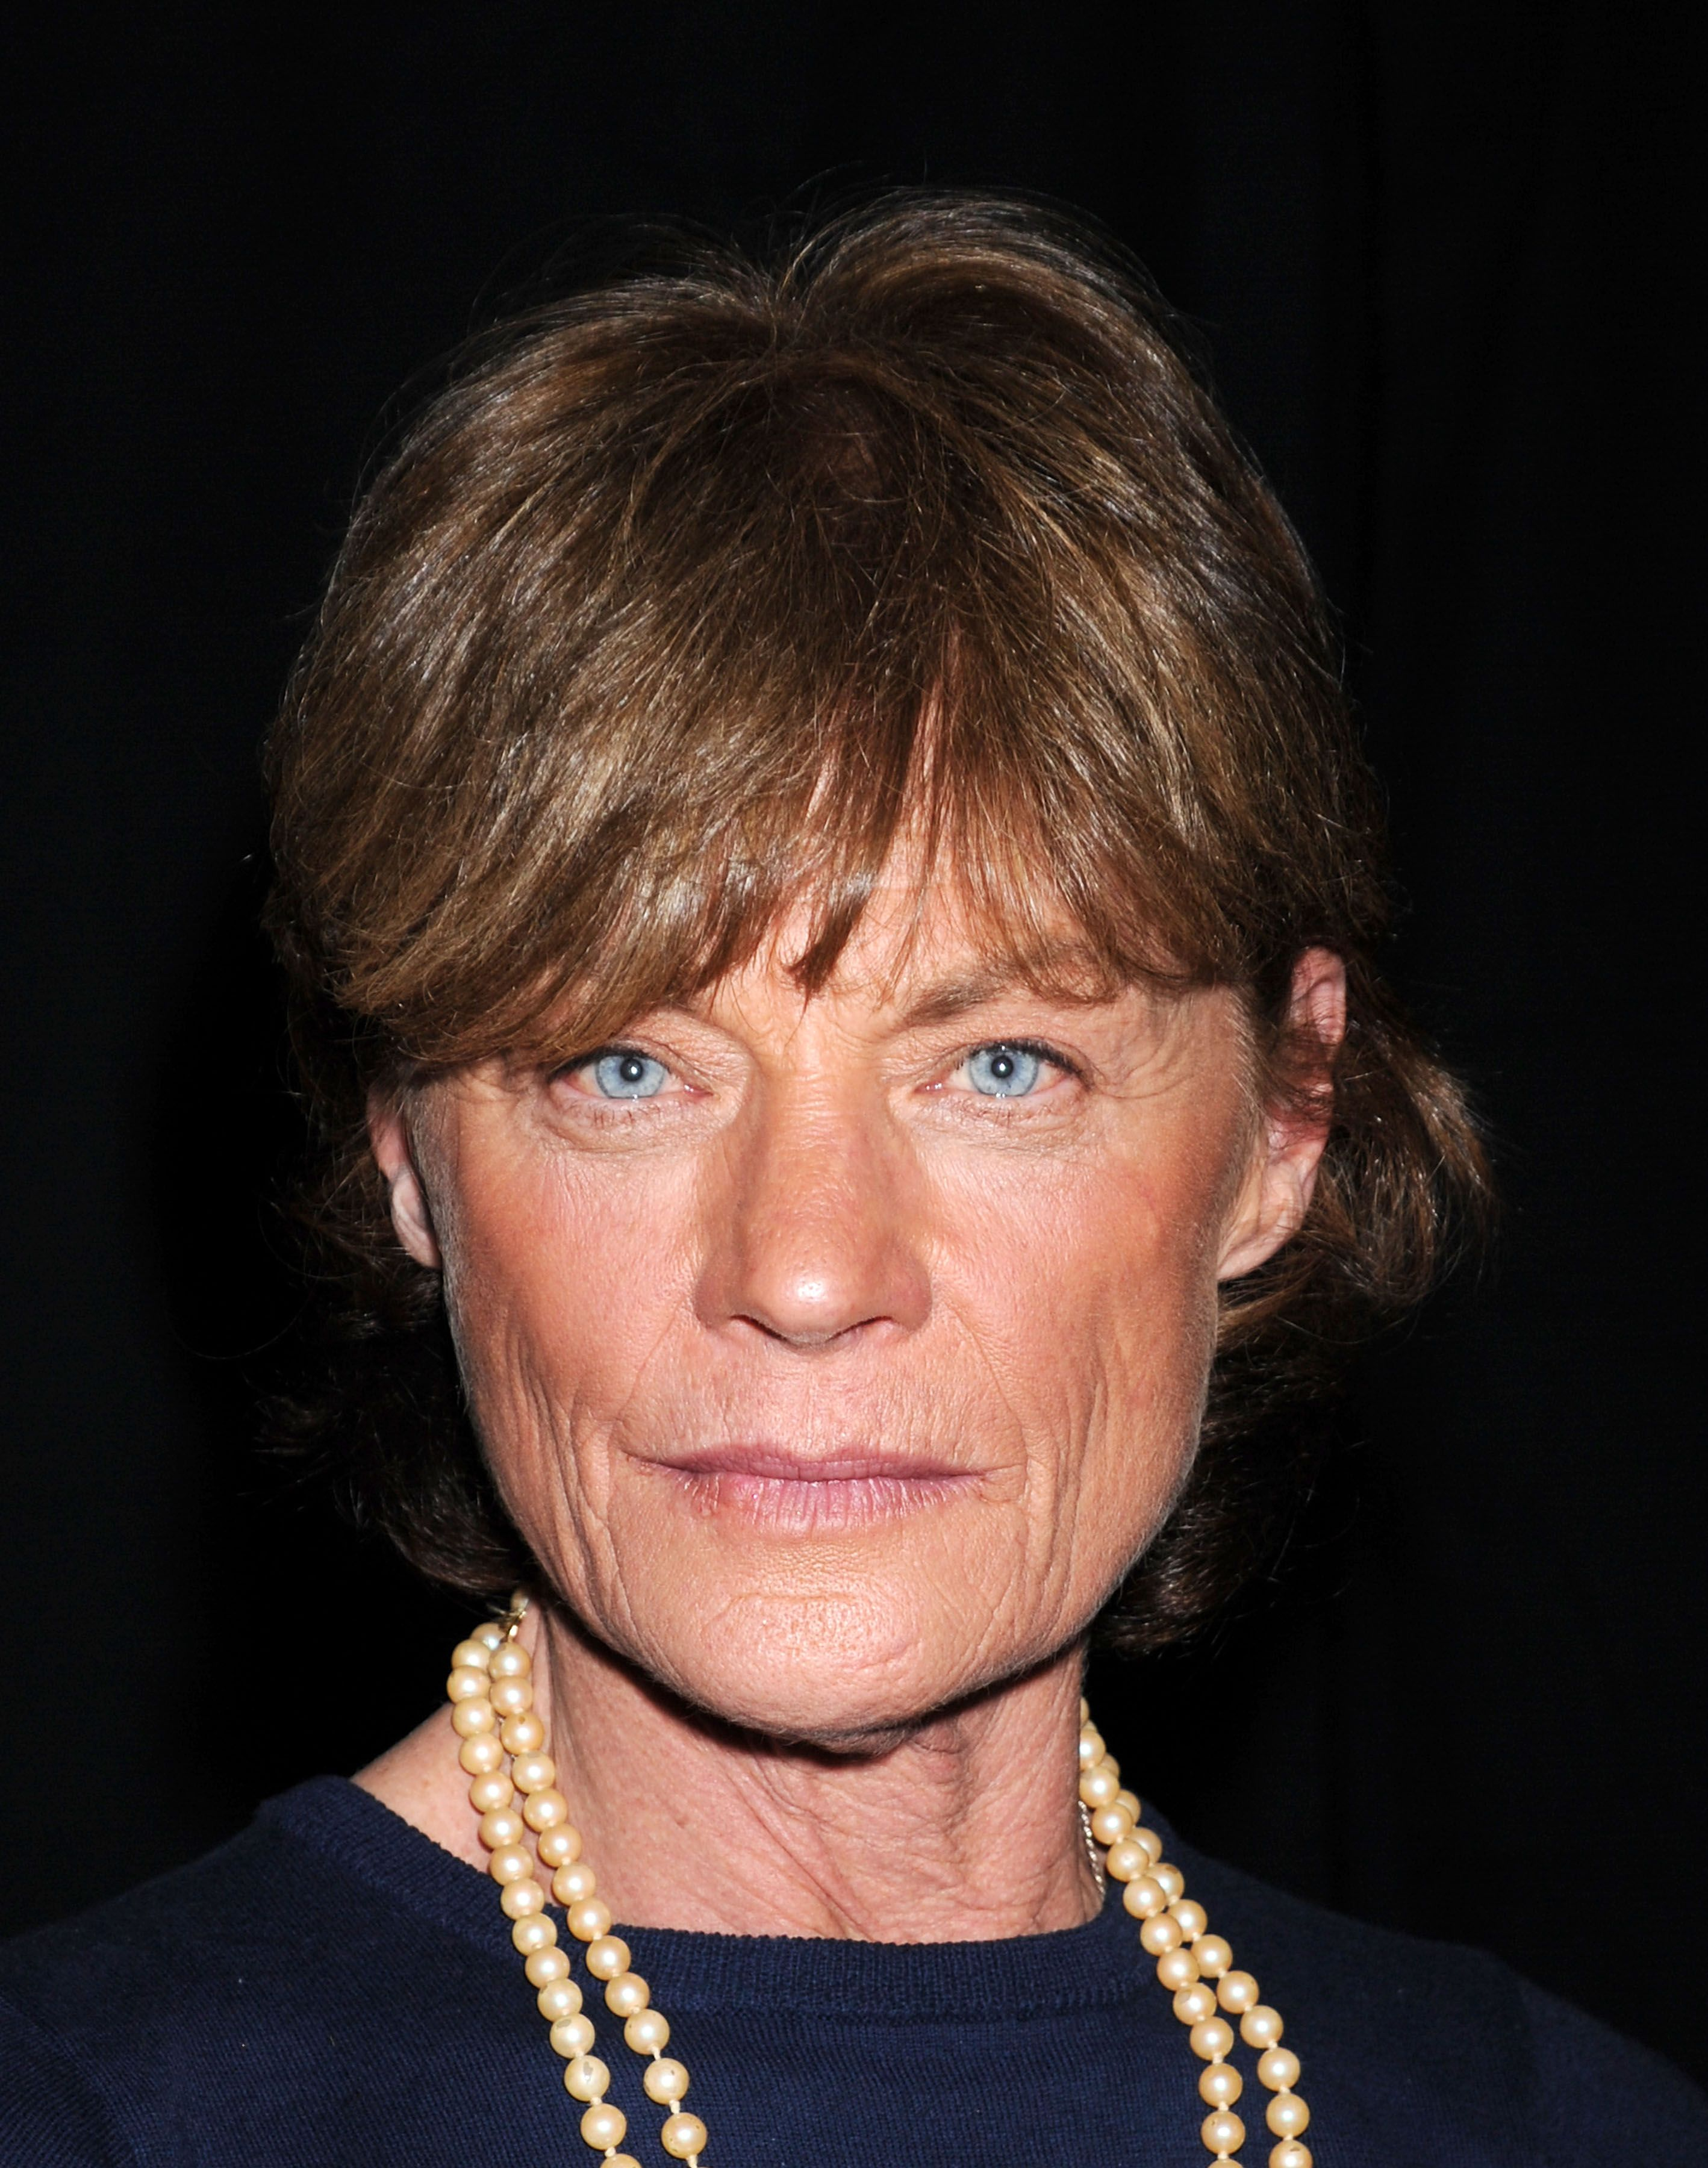 Meg Foster nudes (51 photo), Topless, Sideboobs, Instagram, see through 2020